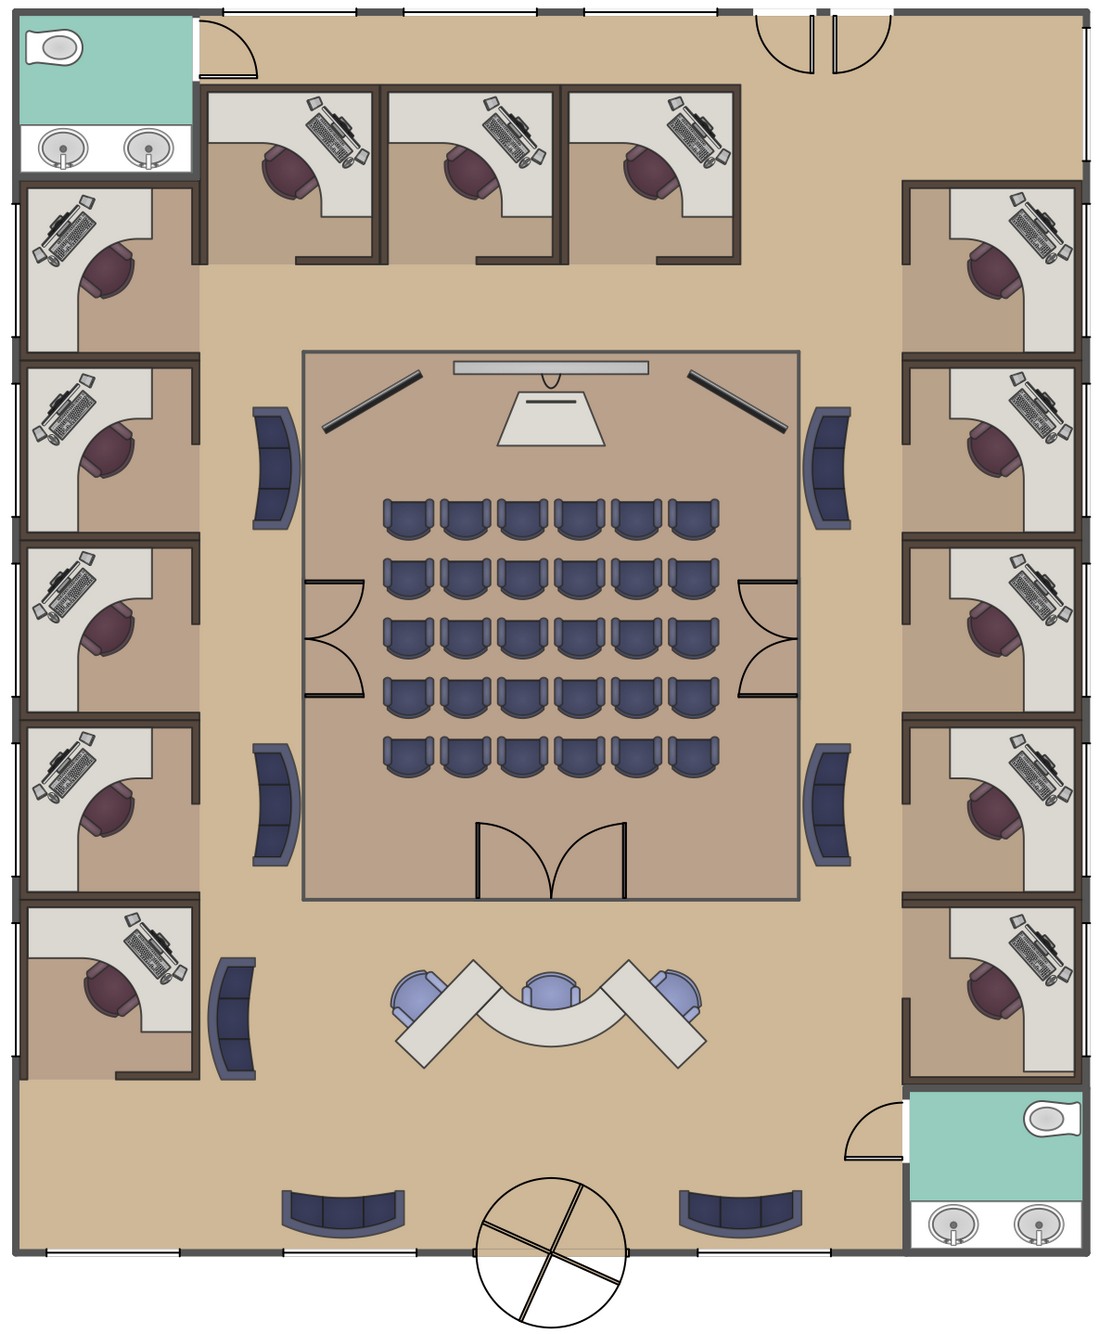 conceptdraw samples building plans office layout